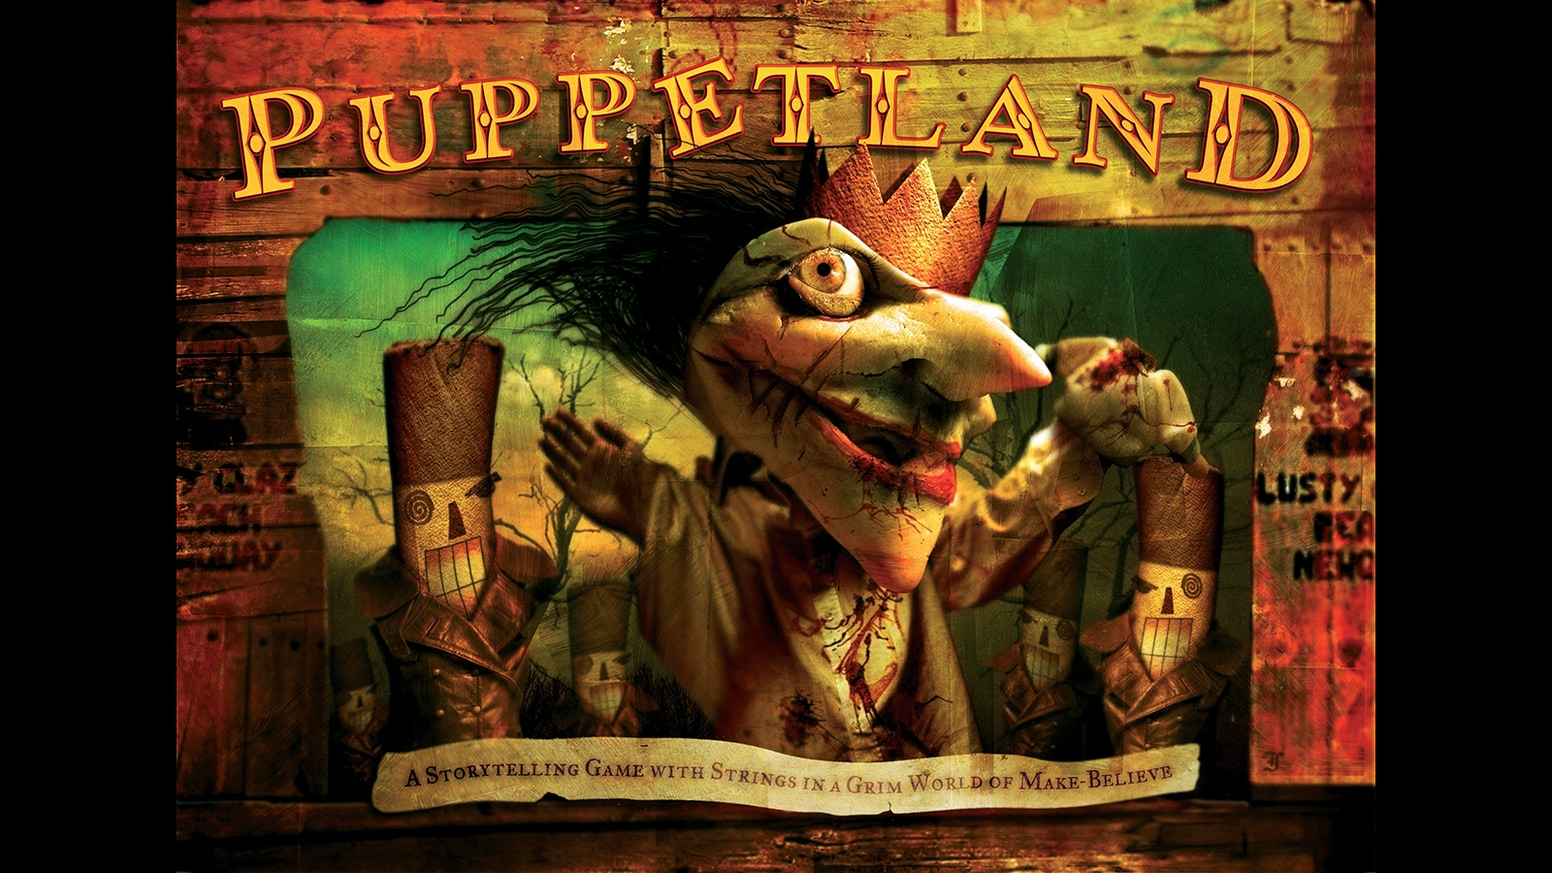 The groundbreaking story game of puppets and horror returns in a beautiful, expanded hardback edition.